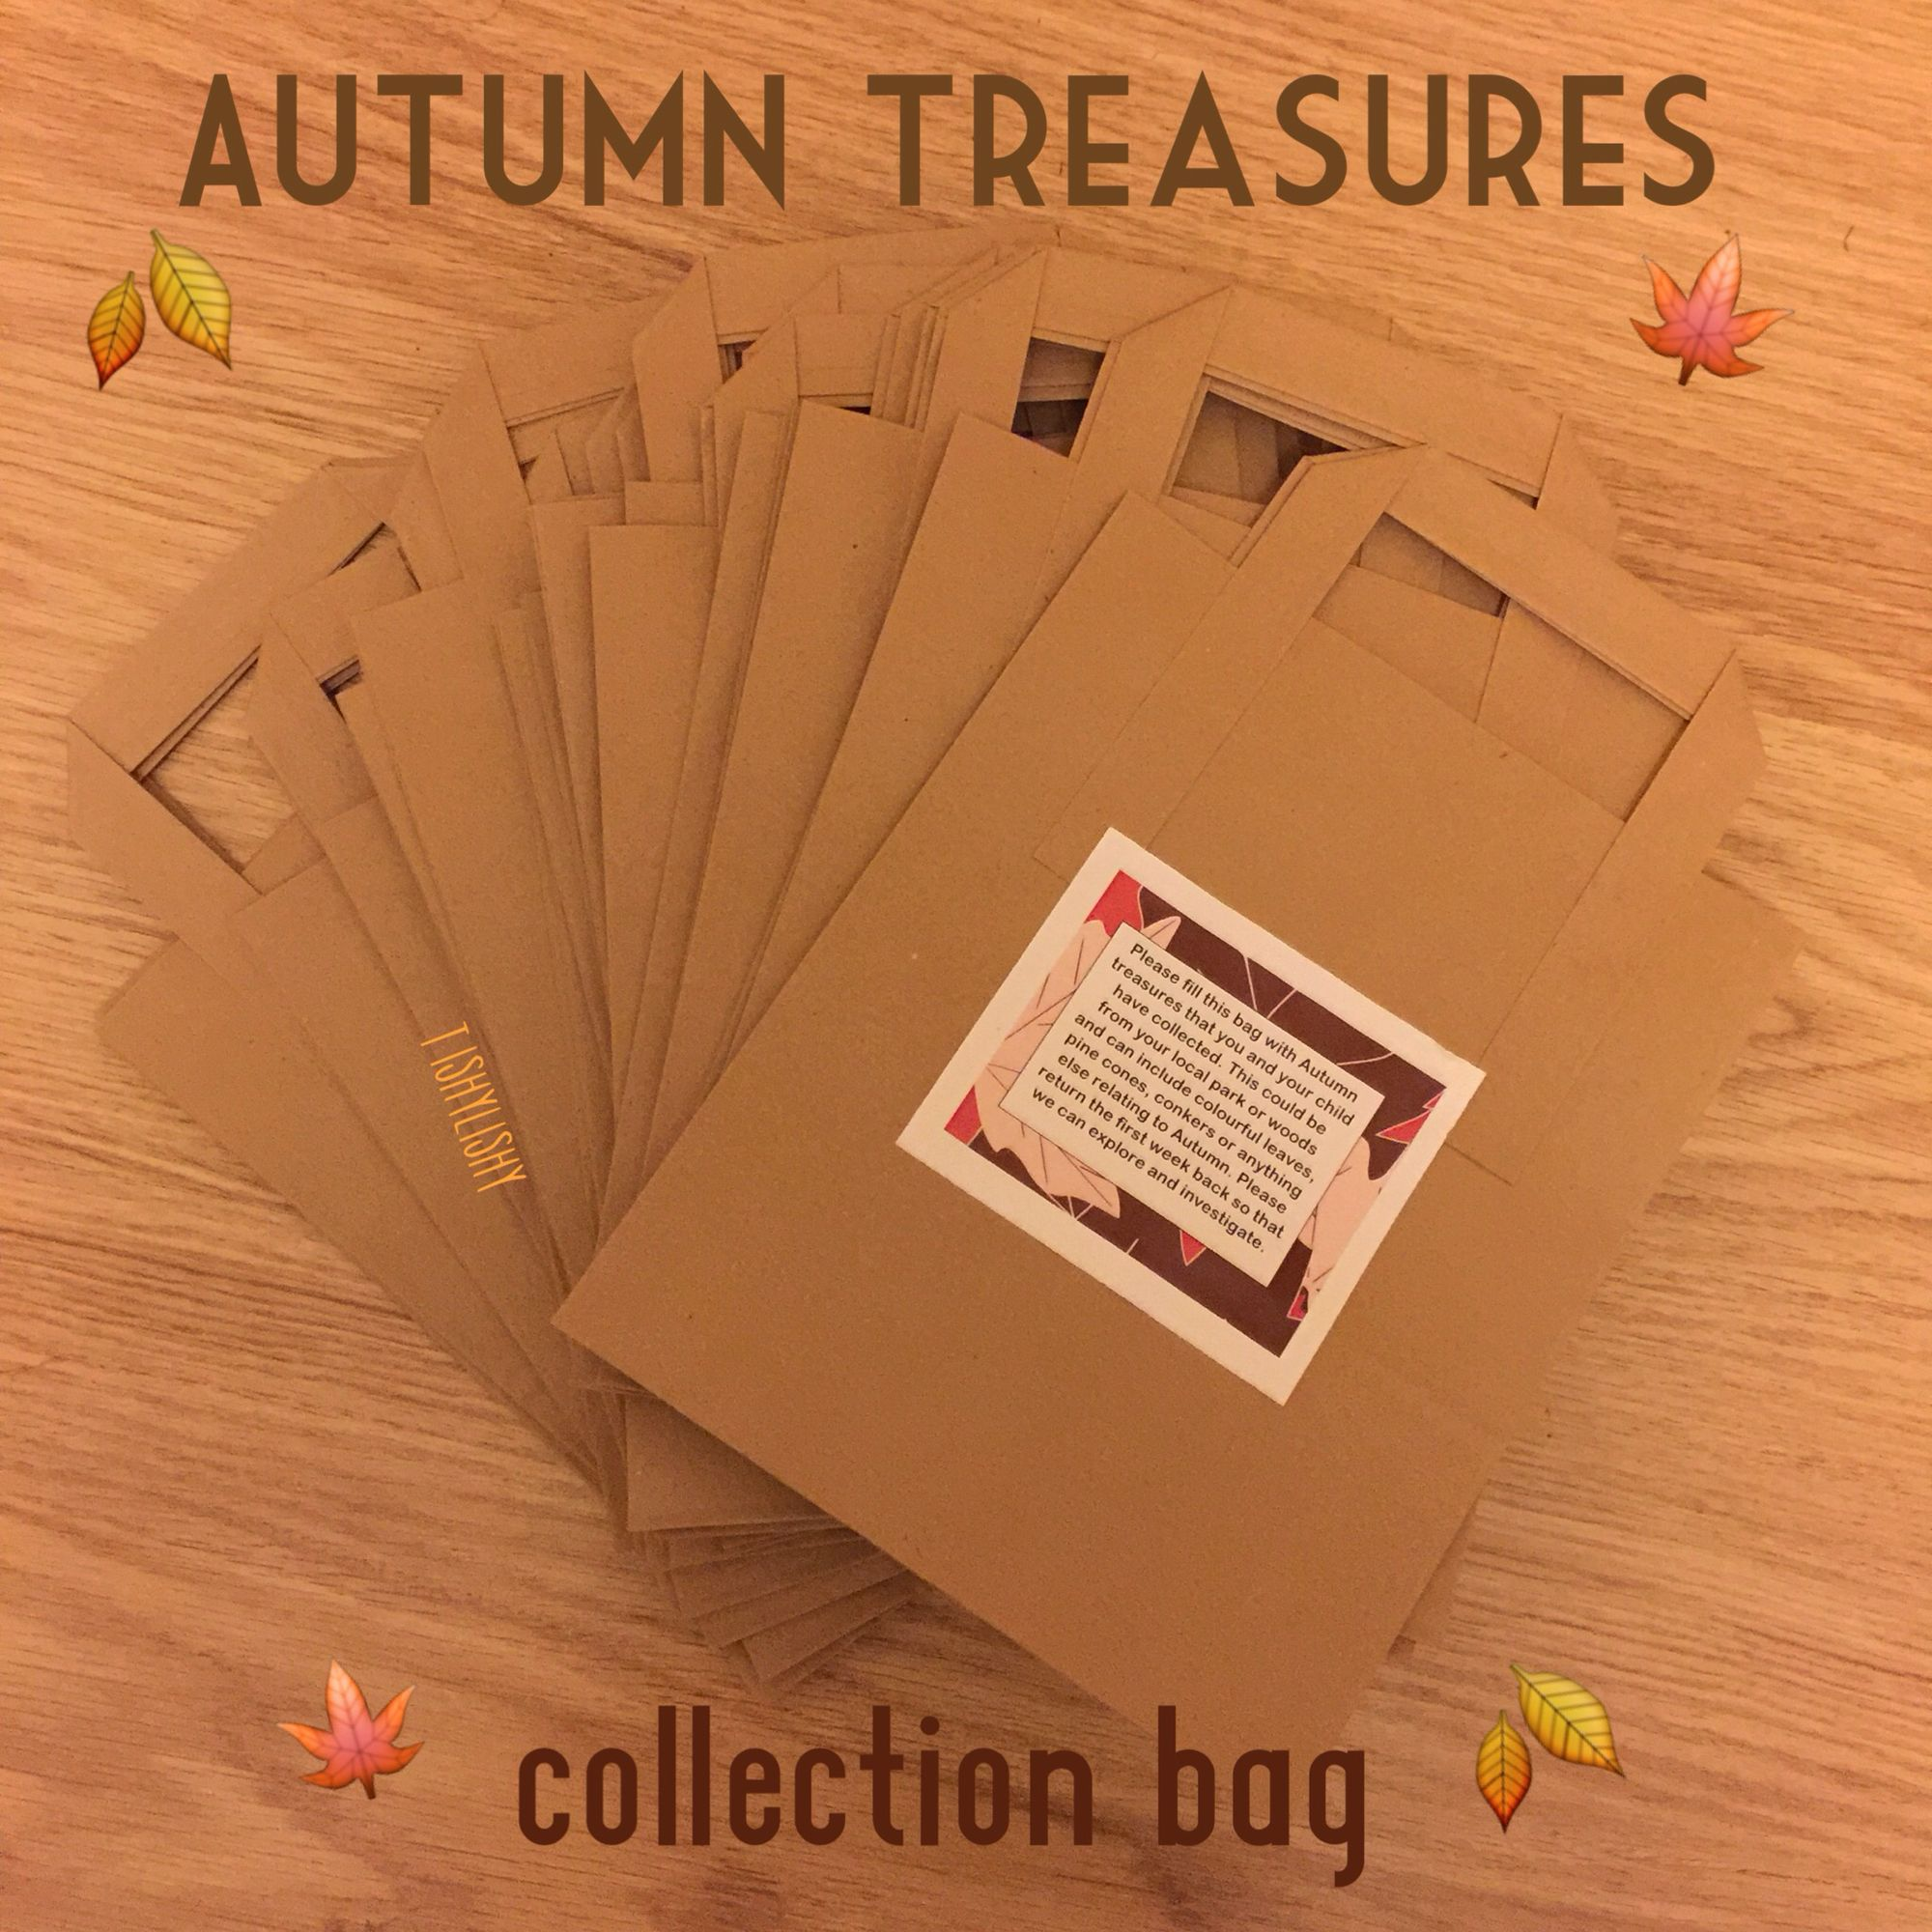 Family Homework Autumn Collection Bag Children Asked